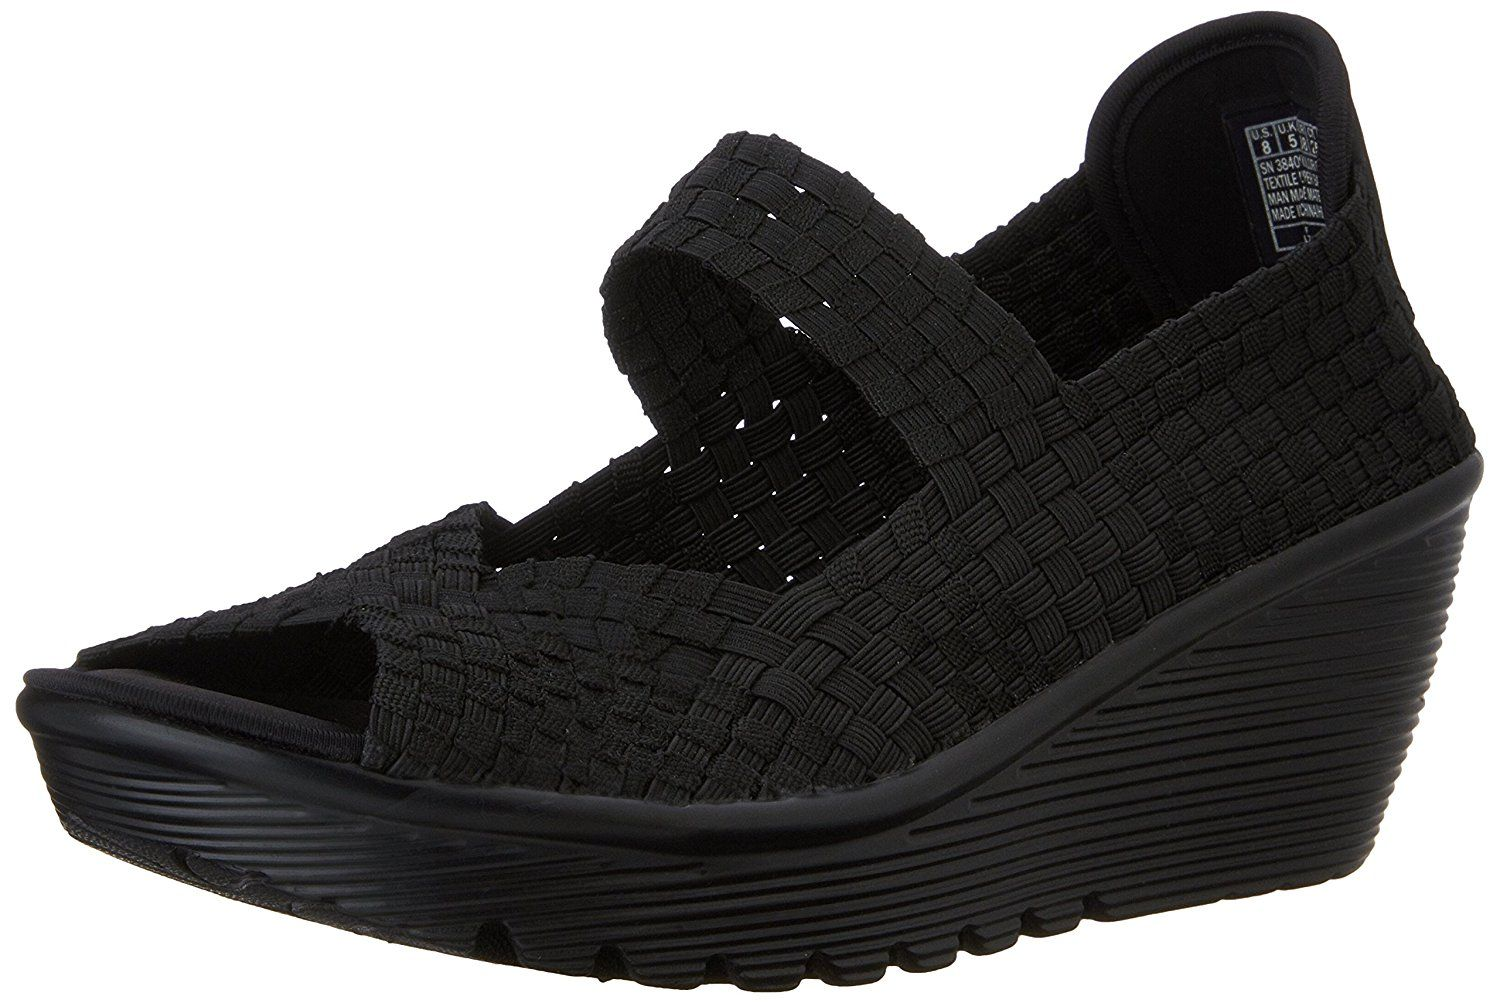 Skechers Cali Women S Parallel Wedge Sandal Awesome Product